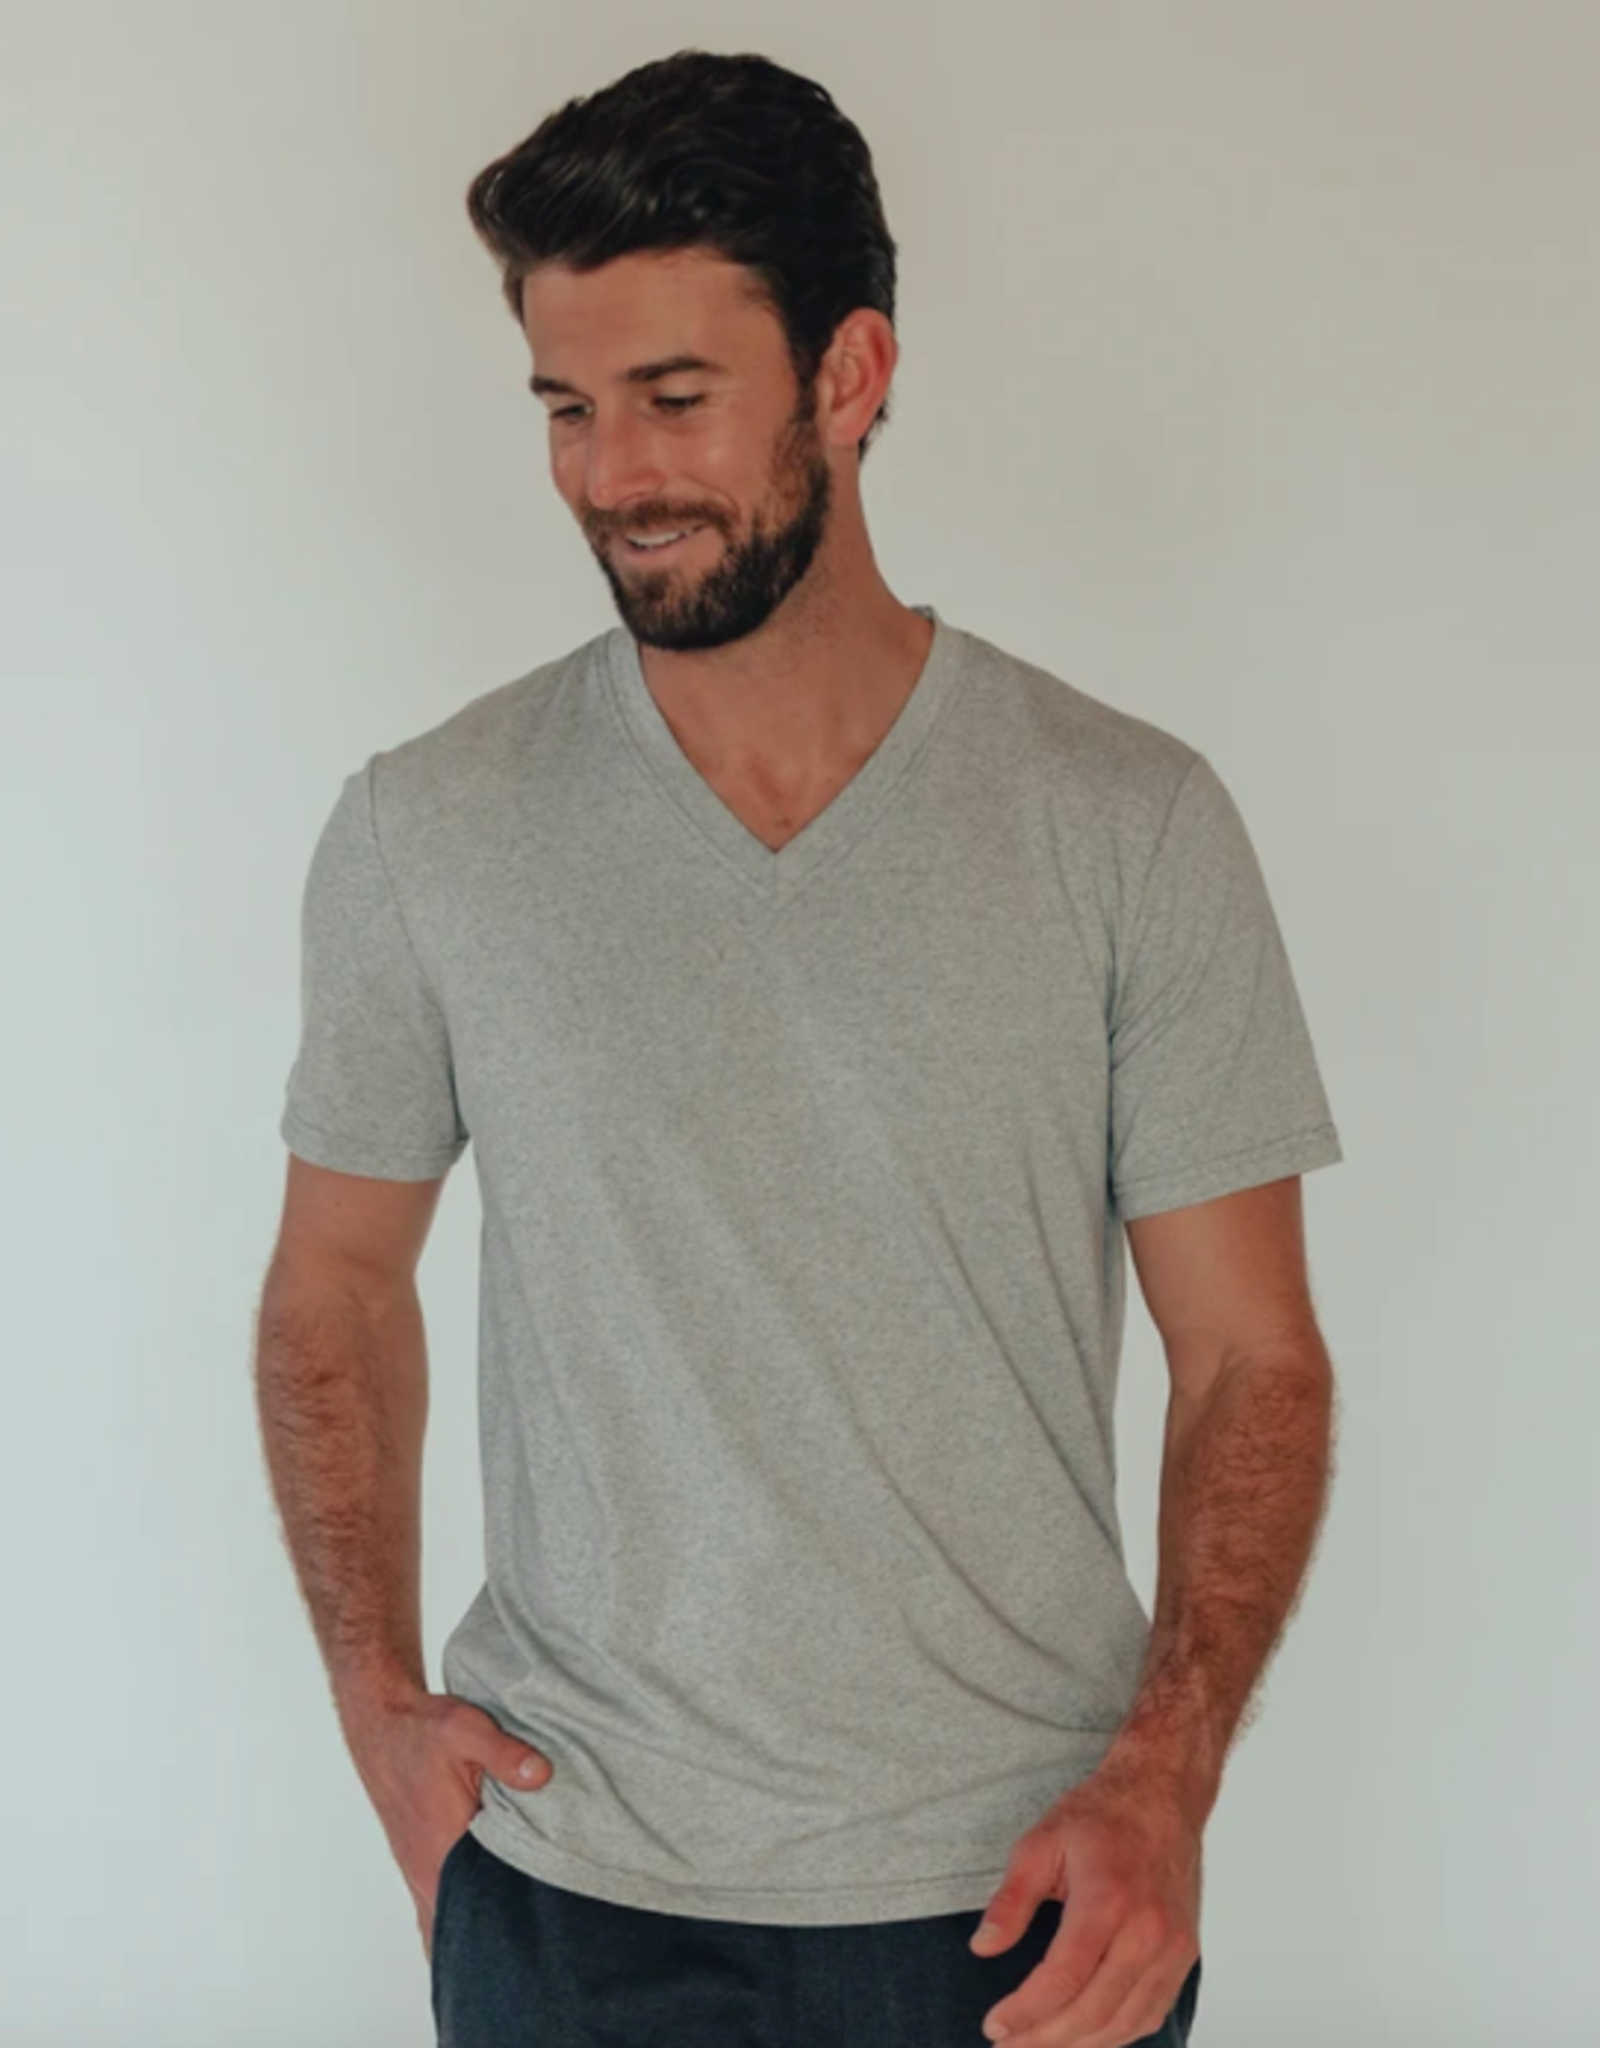 The Normal Brand Active Puremeso V-neck T